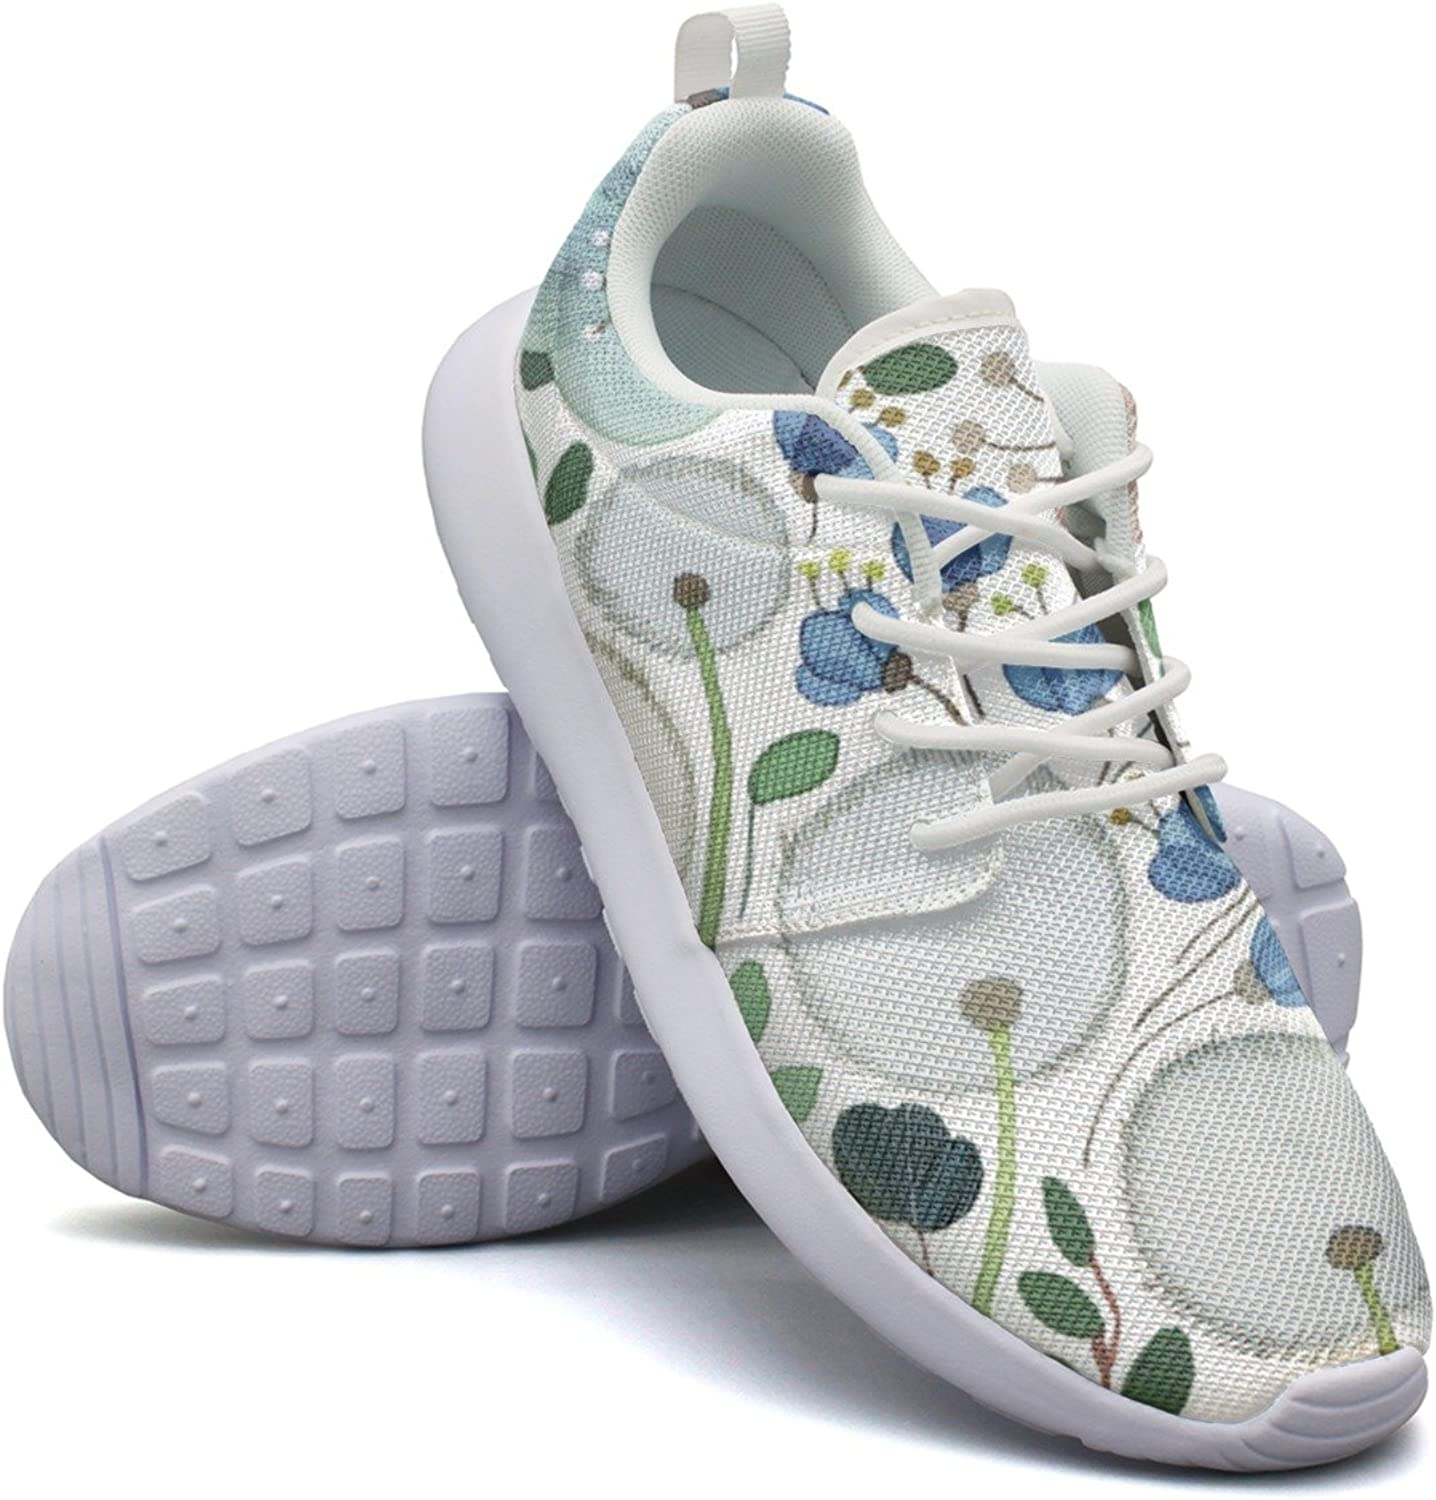 Dandelion Flowers Woman's Net Casual Running shoes Novelty Active